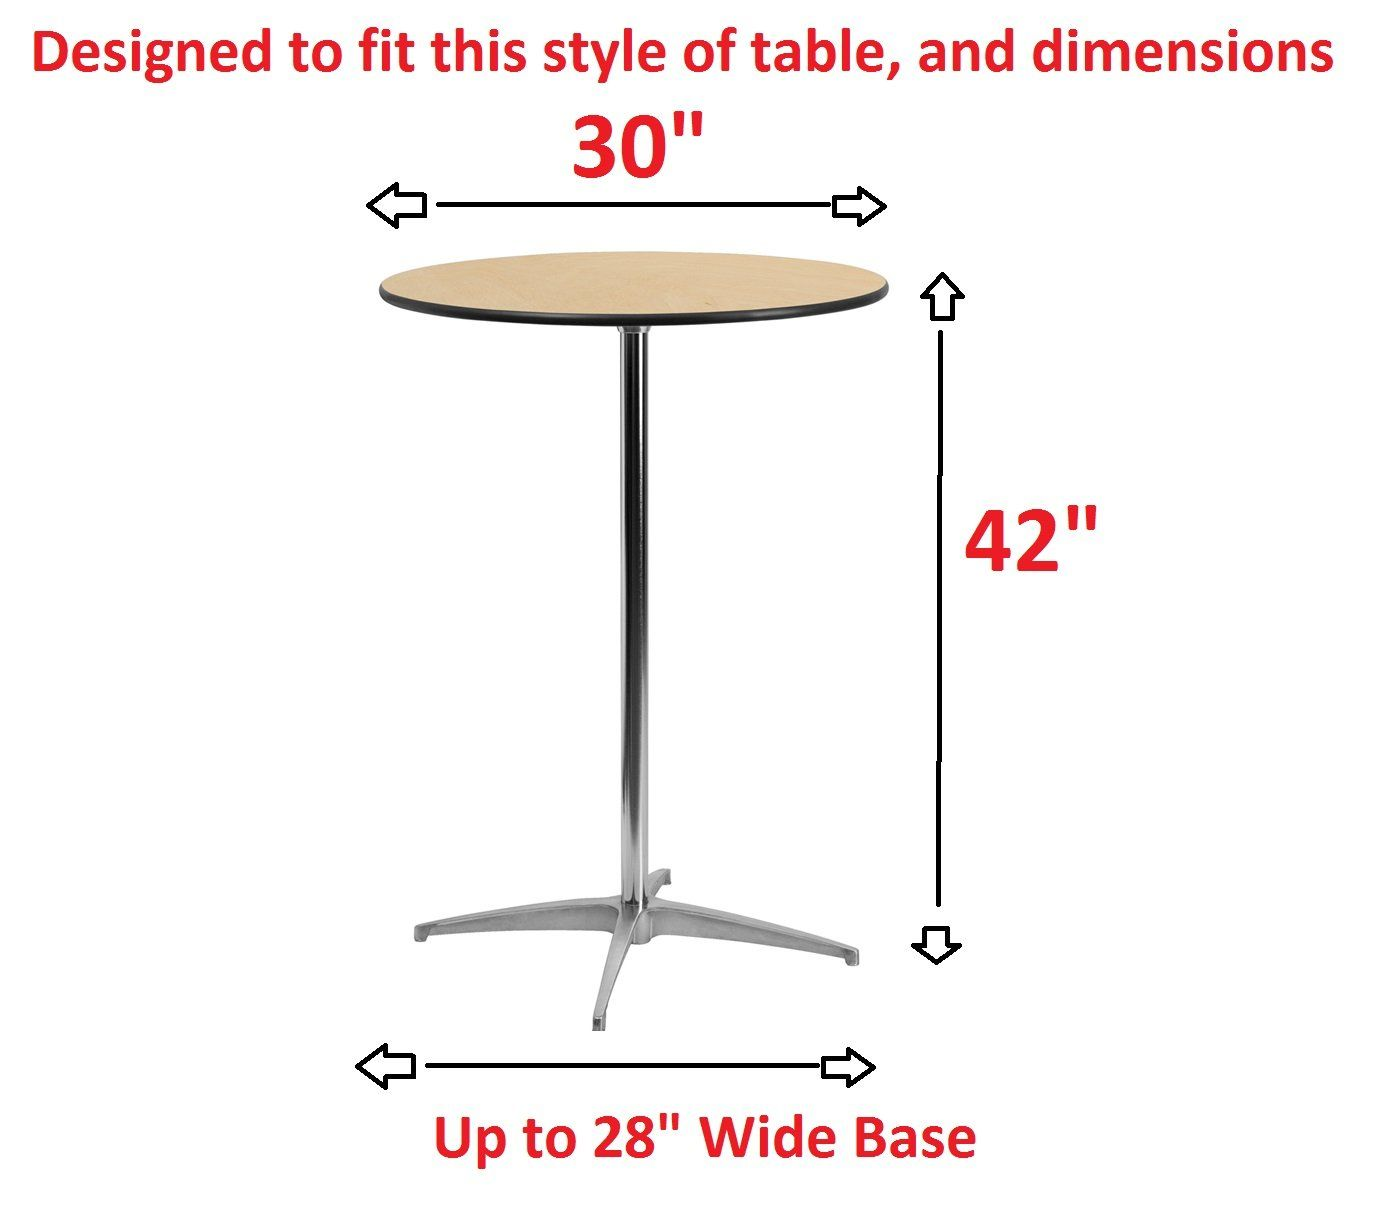 Banquet Tables Pro 30 Diameter X 42 Height White Spandex Highboy Table Cover Ad Diameter Sponsored Banquet Tables Table Covers Highboy Table Table